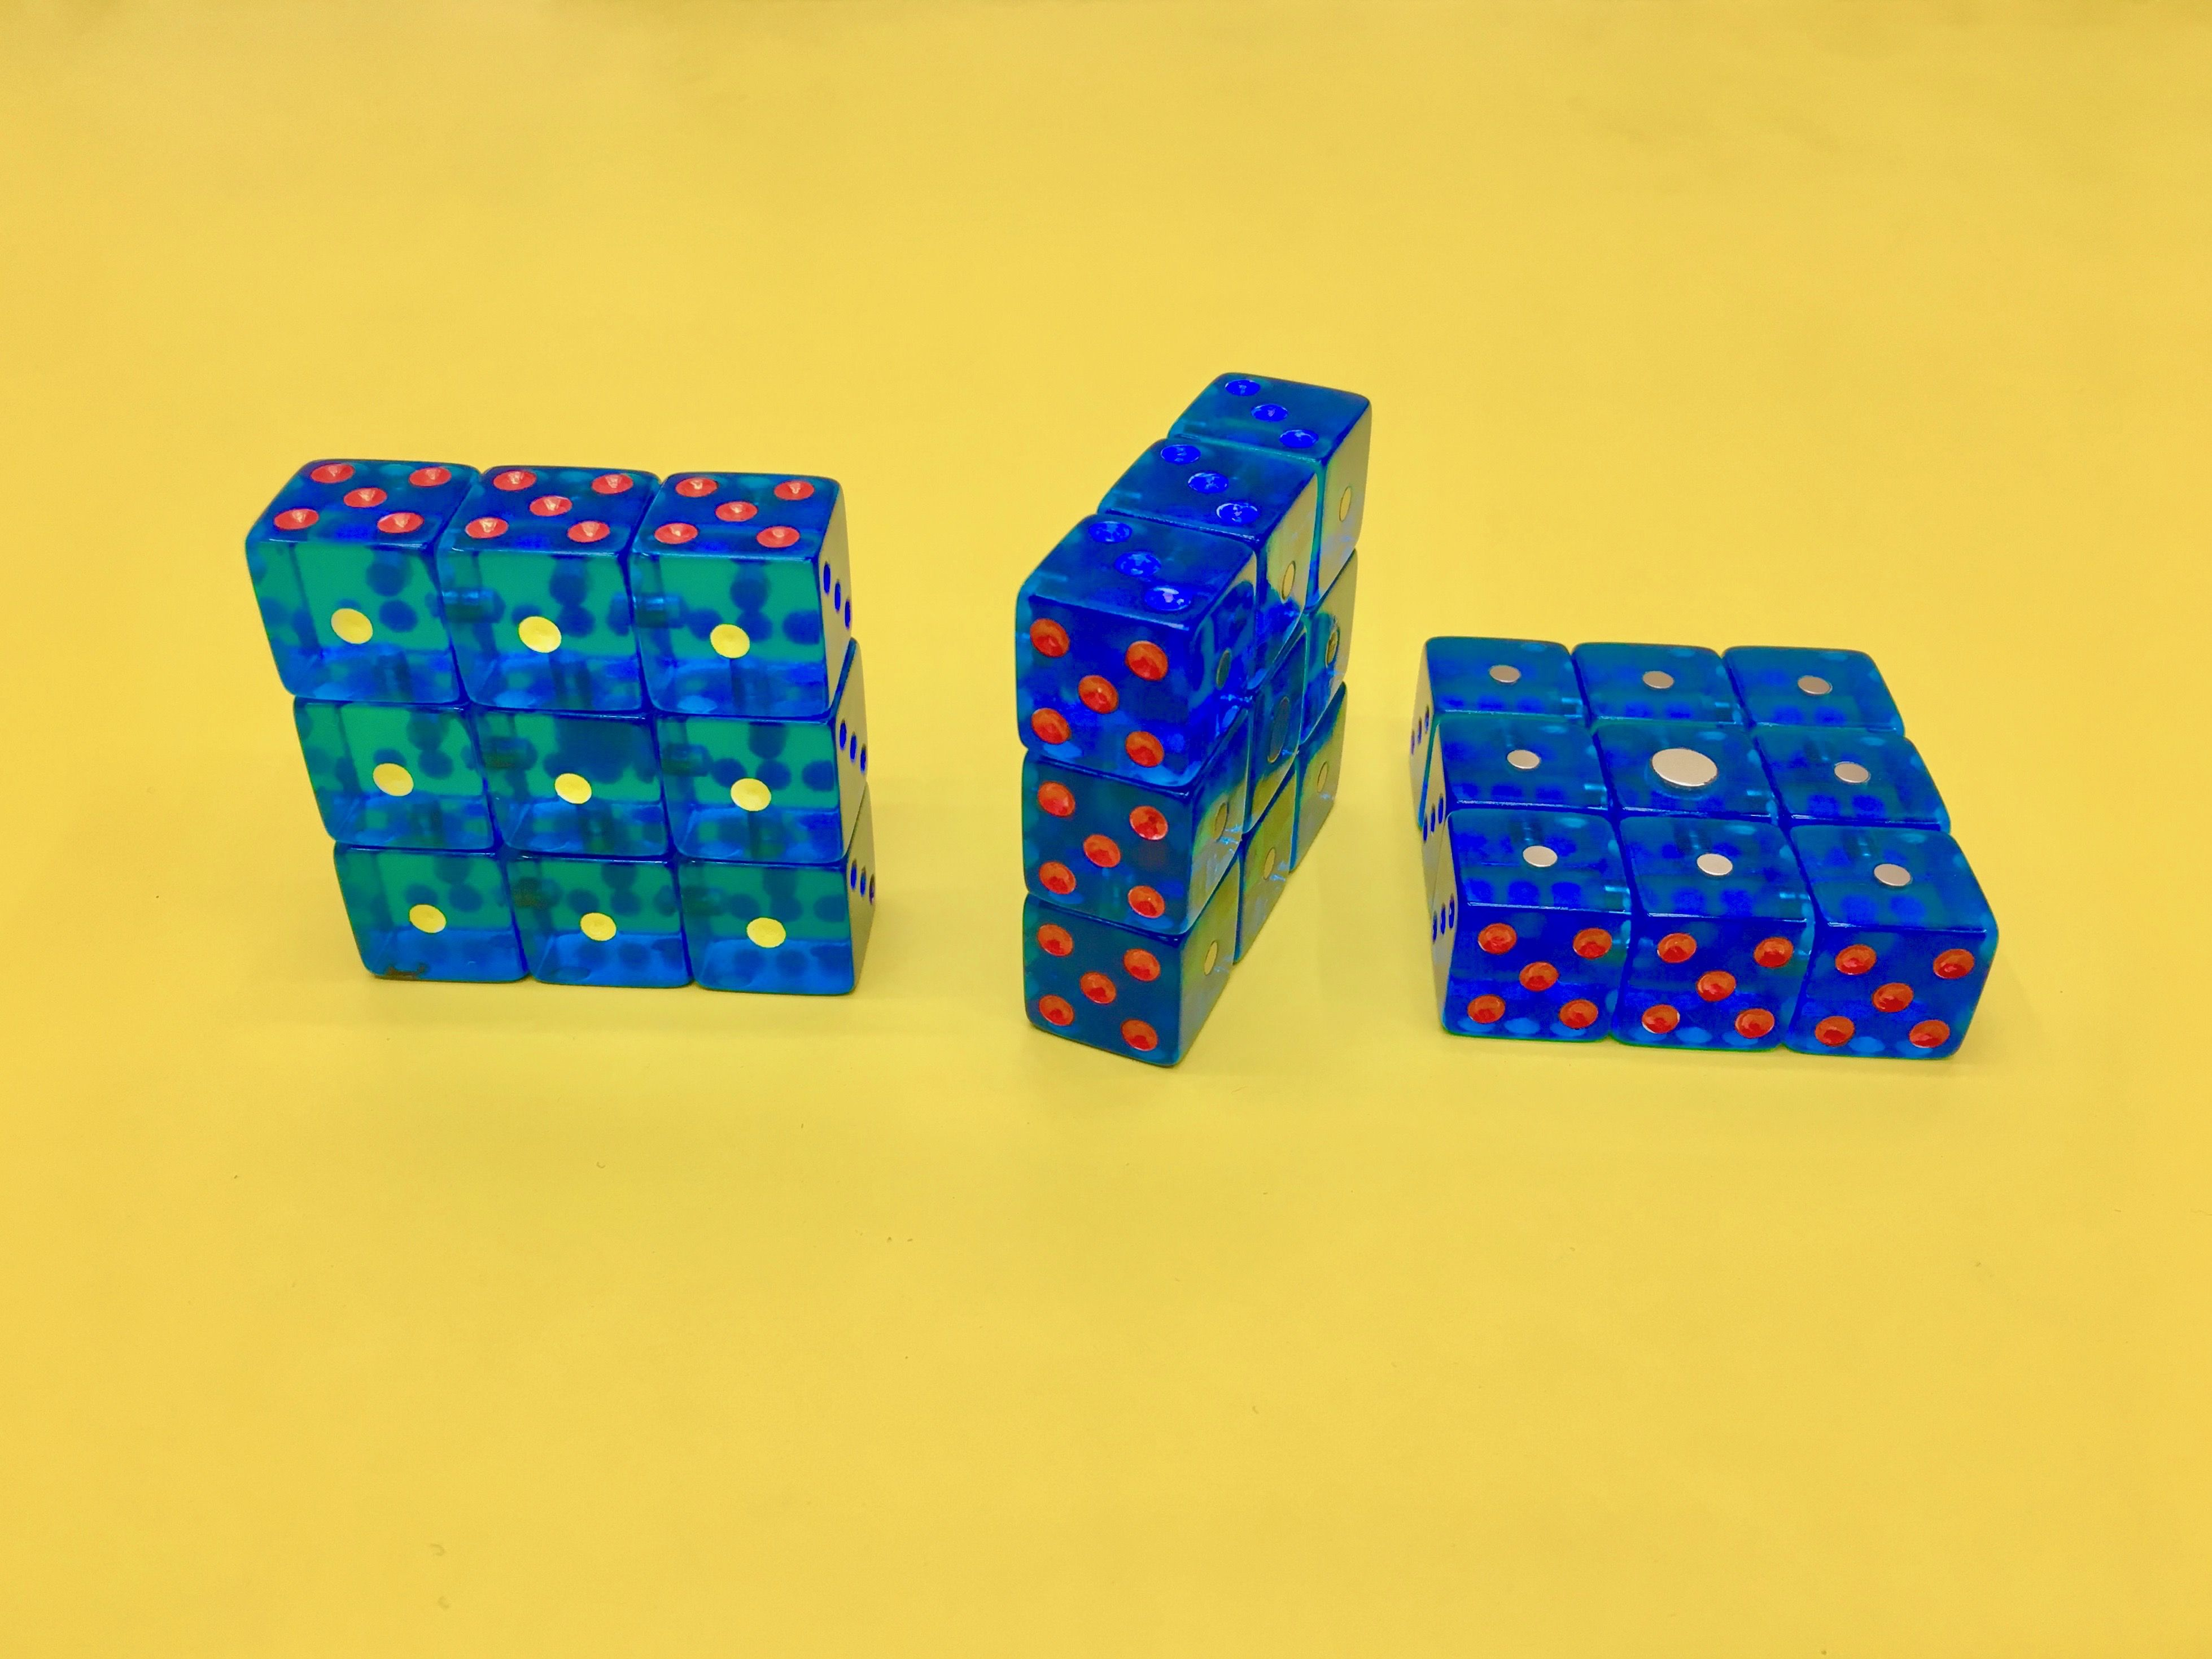 Dice Rubik's Cube First Look & Modifications. I